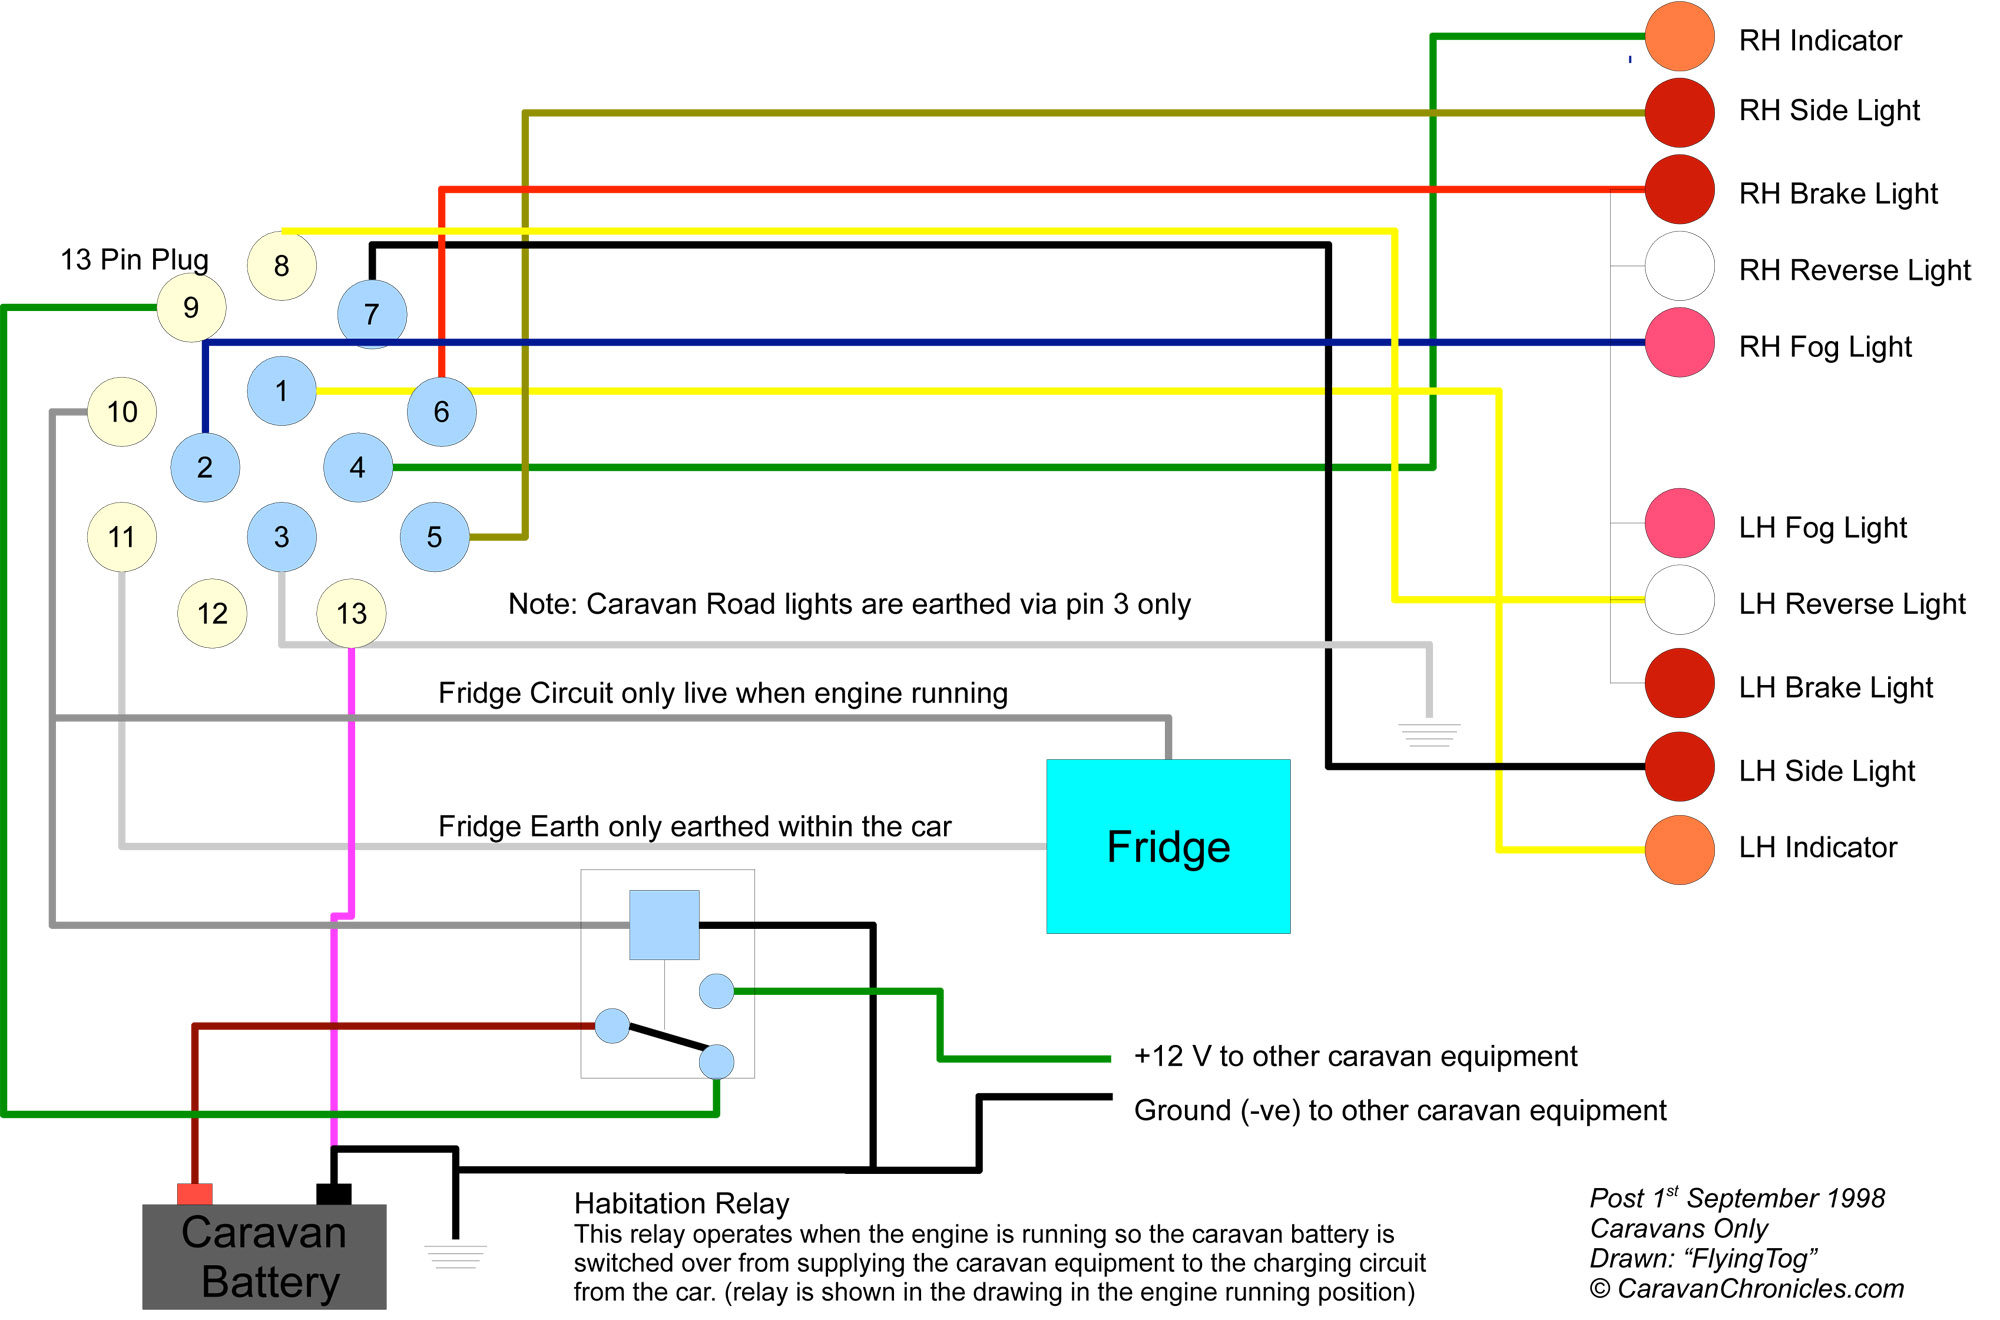 12s trailer plug wiring diagram images trailer 12n wiring diagram wiring diagram for caravan socket printable